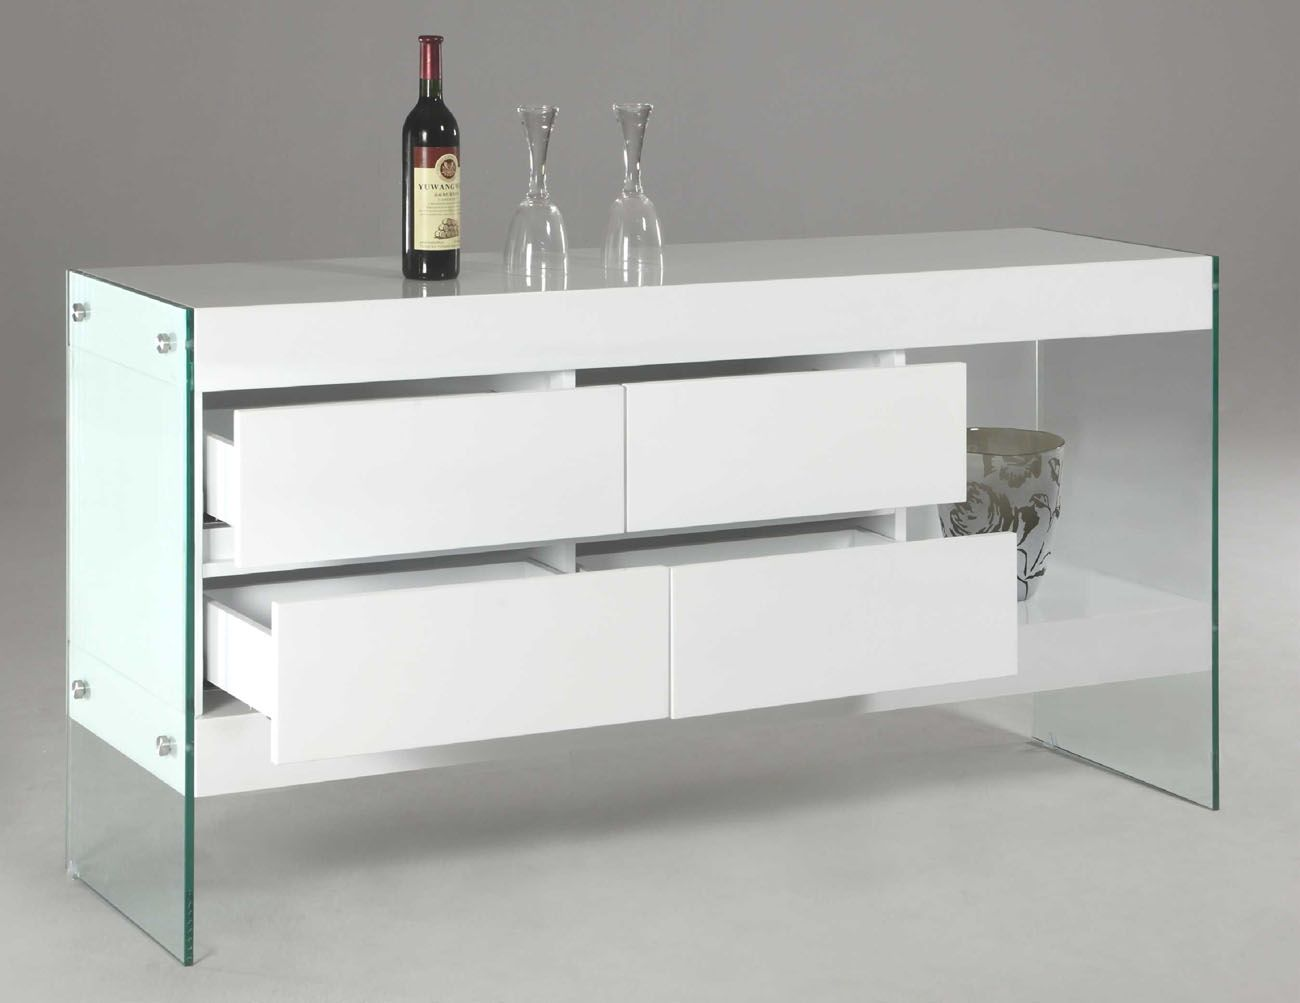 Made Of Eco Friendly Solid Wood The Contemporary Sideboard Is To Last And Finished In An Attractive White Lacquer